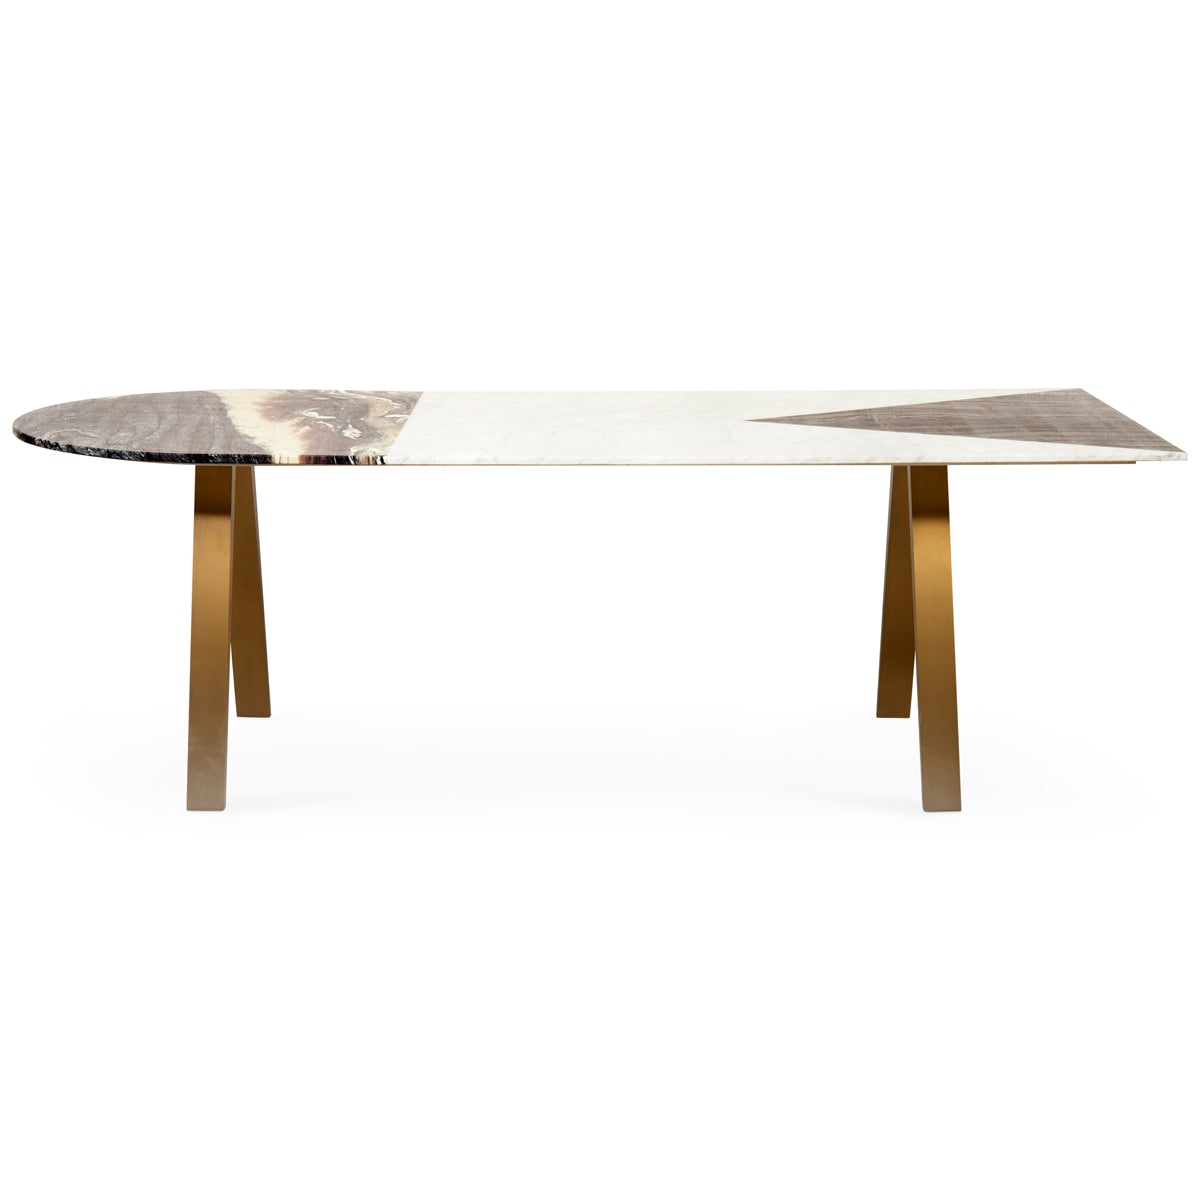 Marseille Dining Table - ModShop1.com